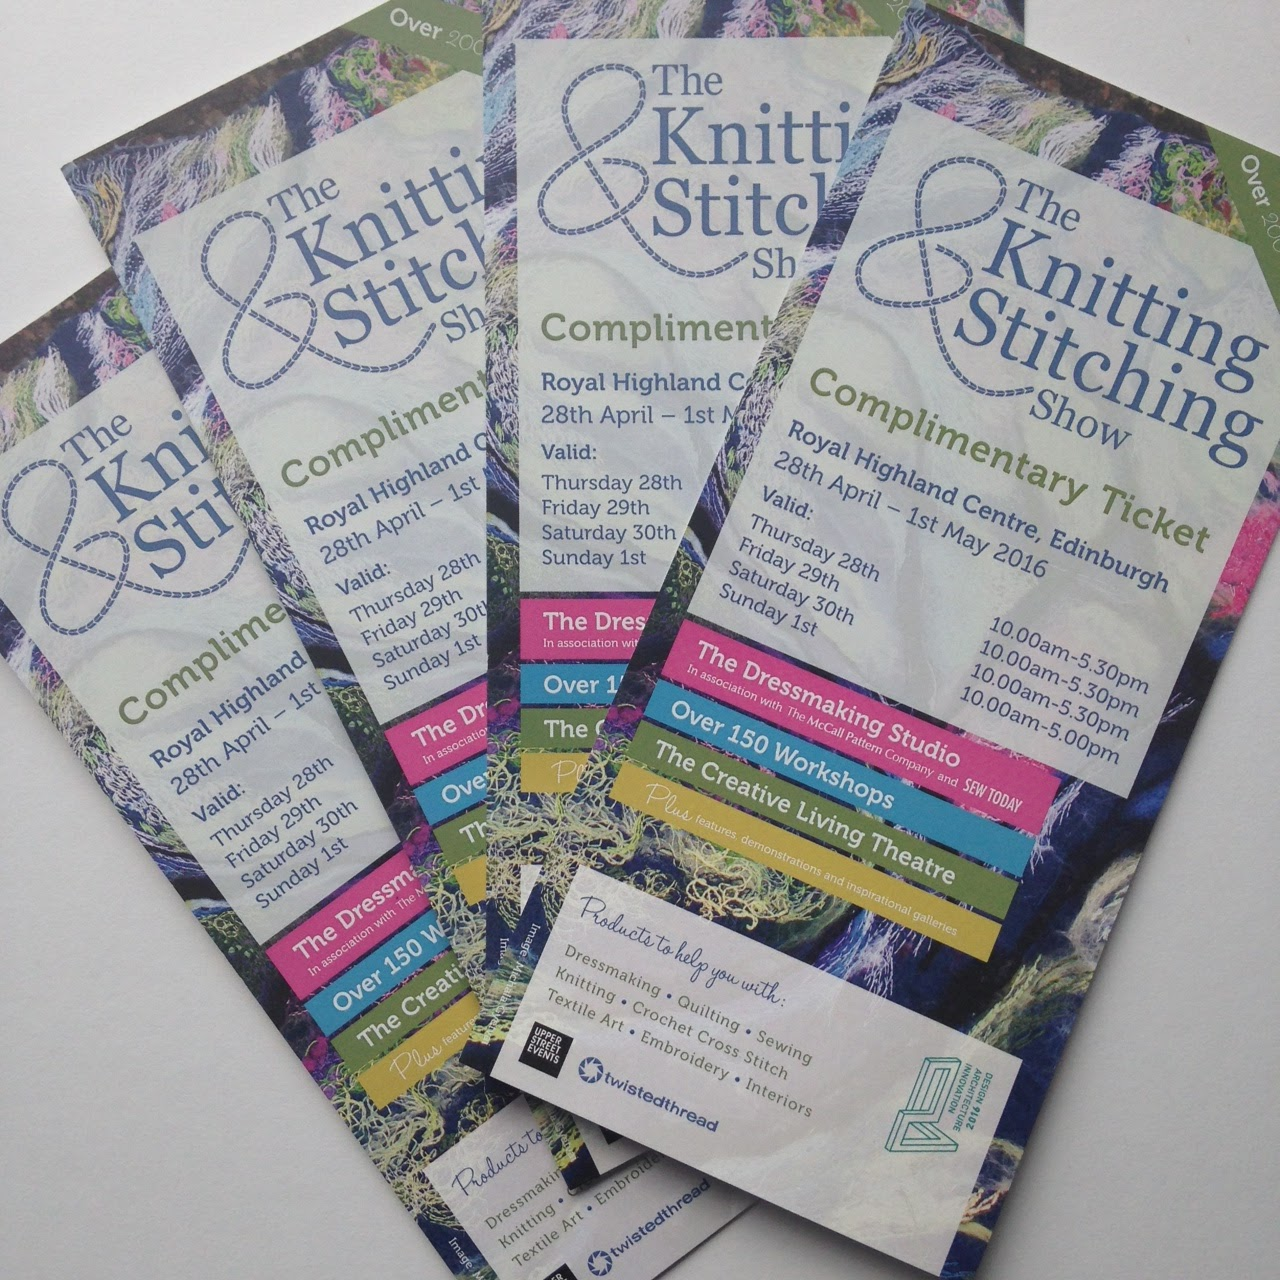 Knitting And Stitching Show Ticket Offers : myBearpaw: Knitting and Stitching Show Edinburgh ticket GIVEAWAY!